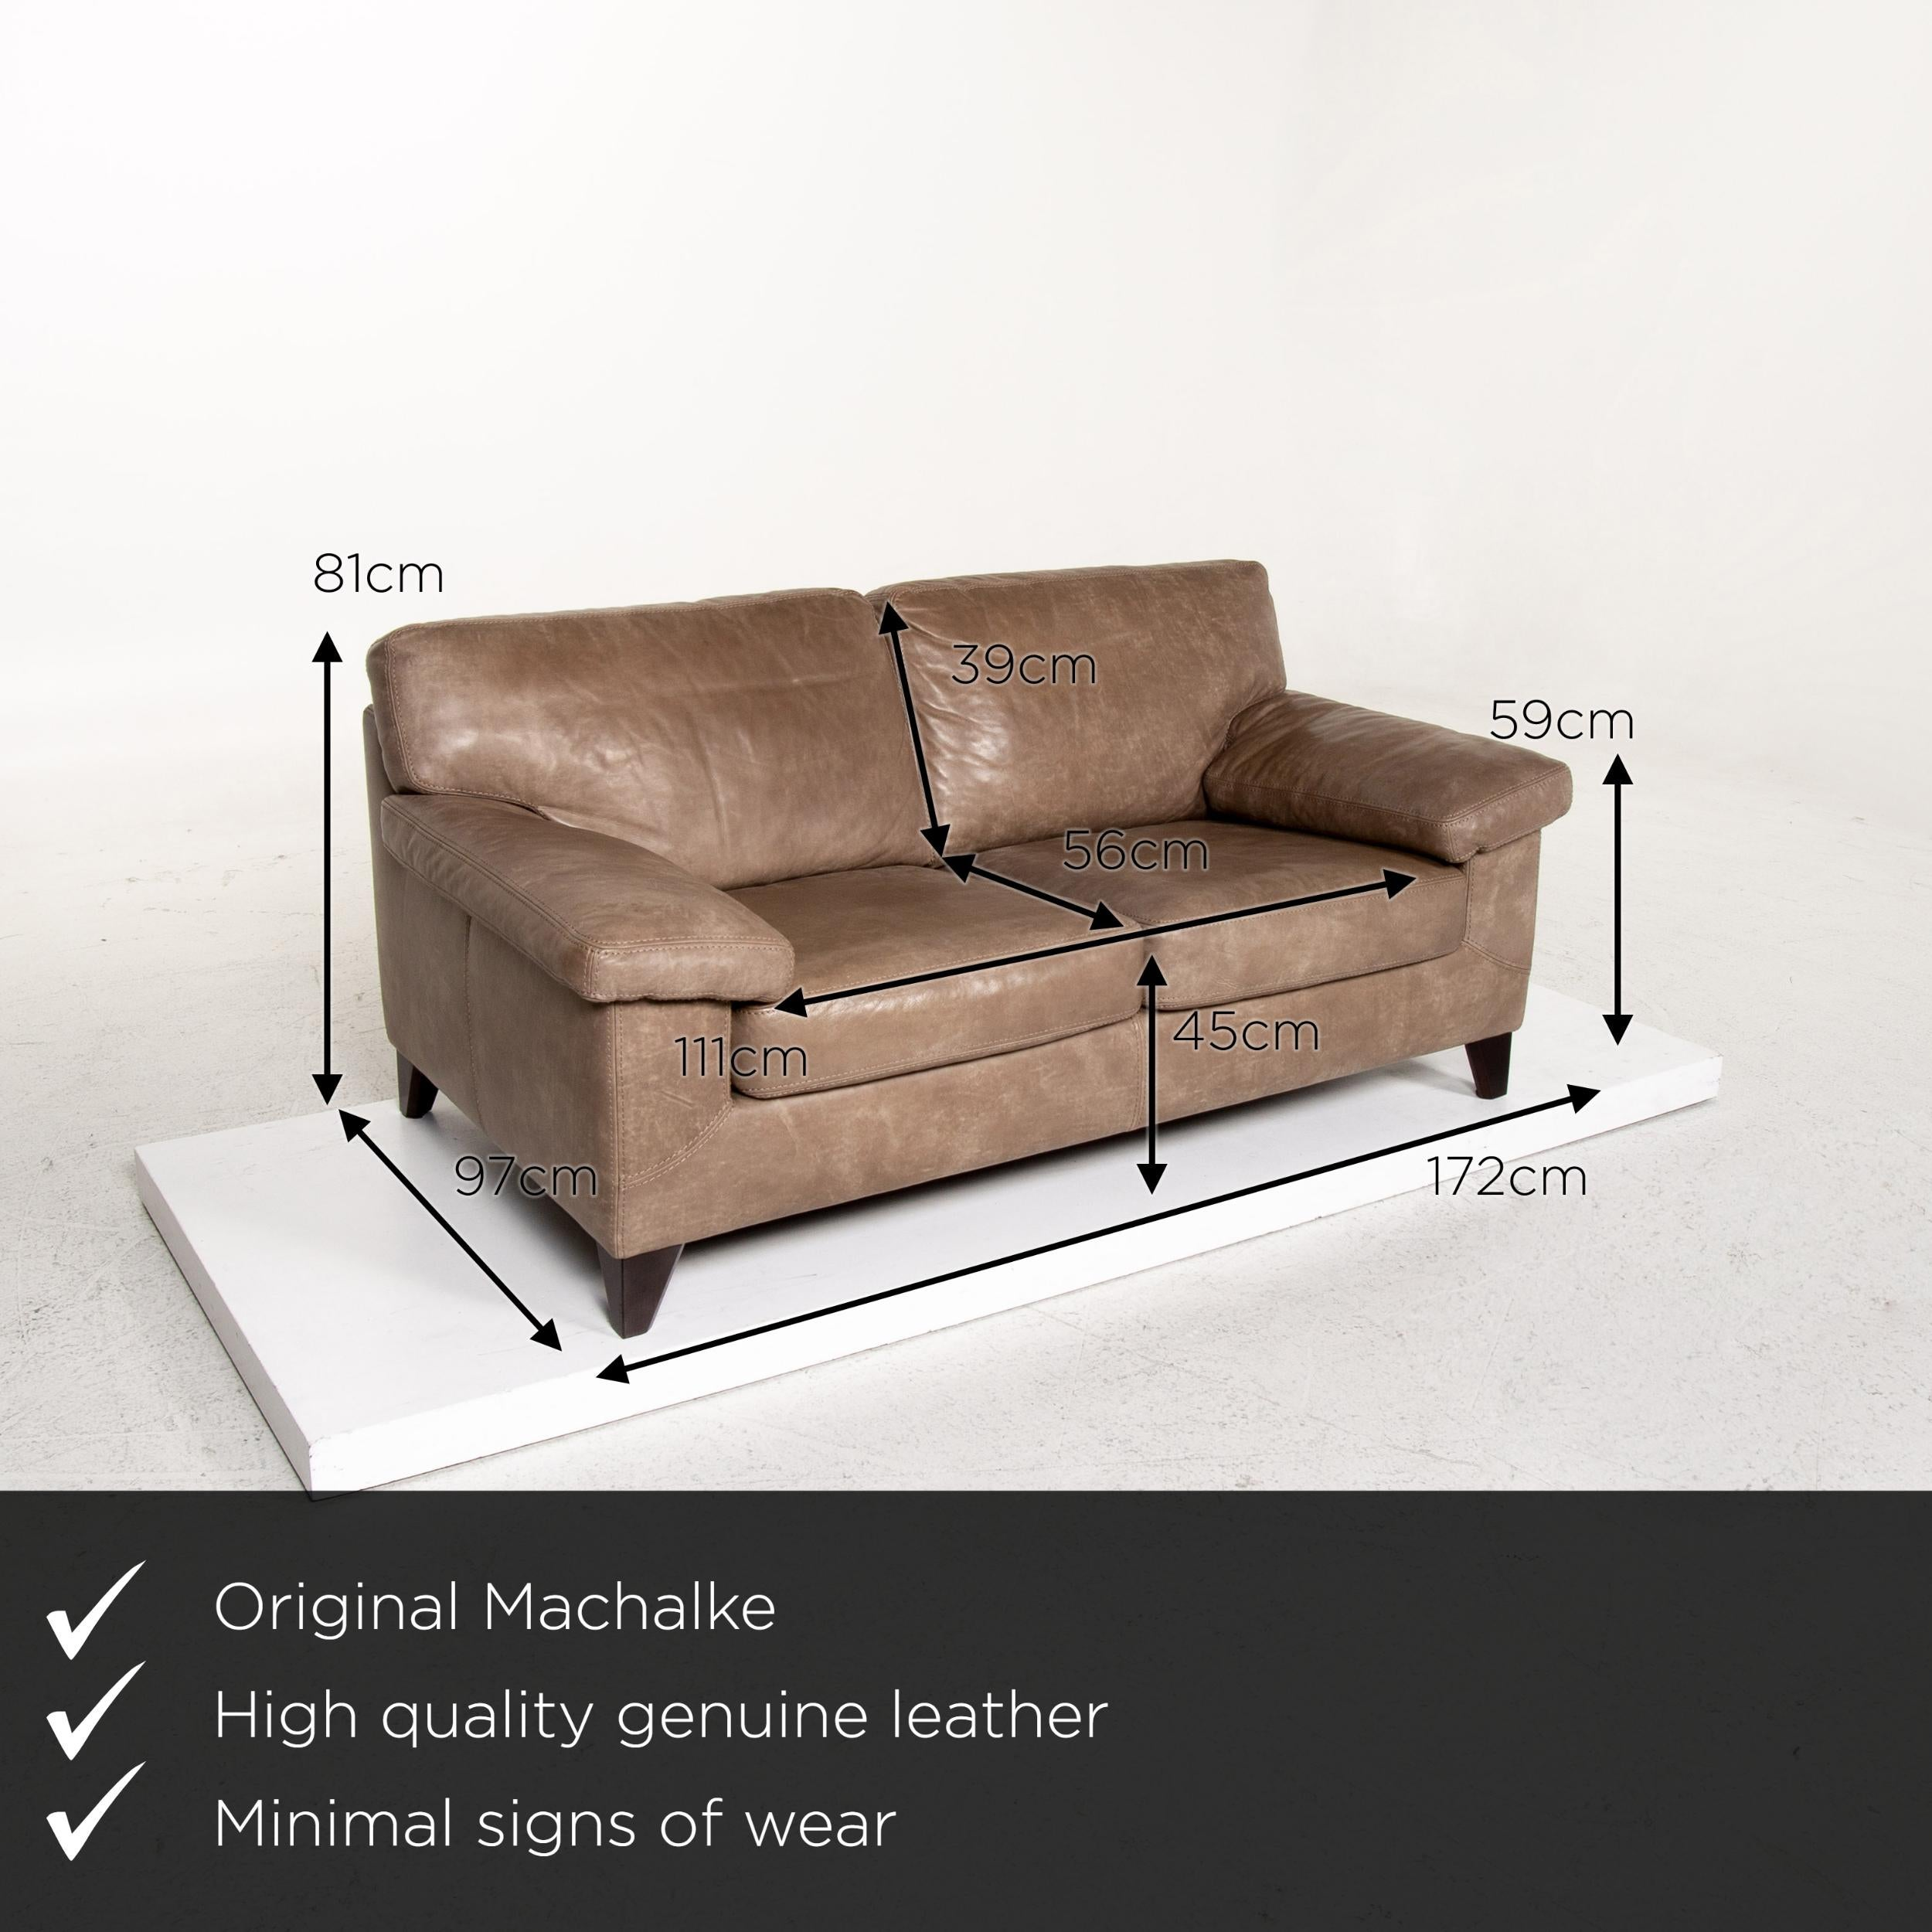 Machalke Diego Leather Sofa Brown Two Seat Couch Teun Van Zanten For Sale At 1stdibs